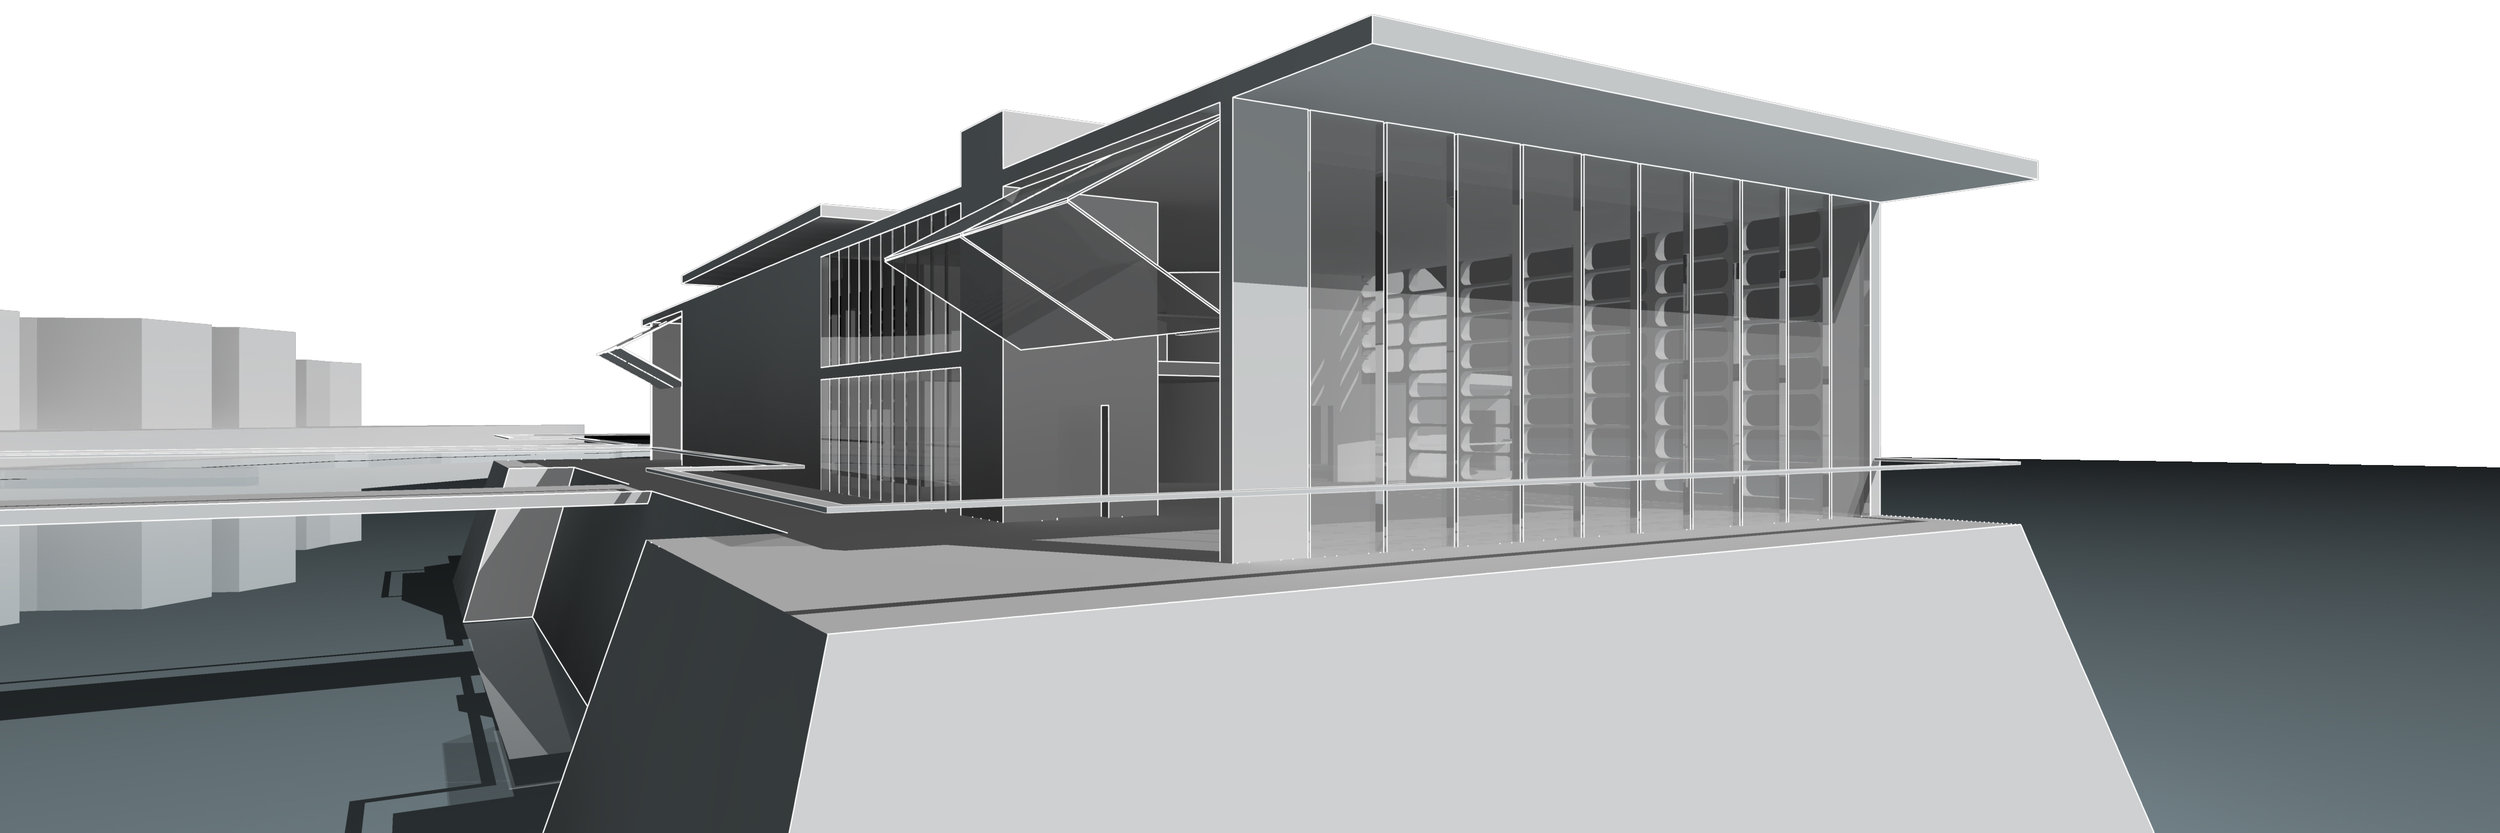 Perspective View of the Concert Hall Entry Lobby